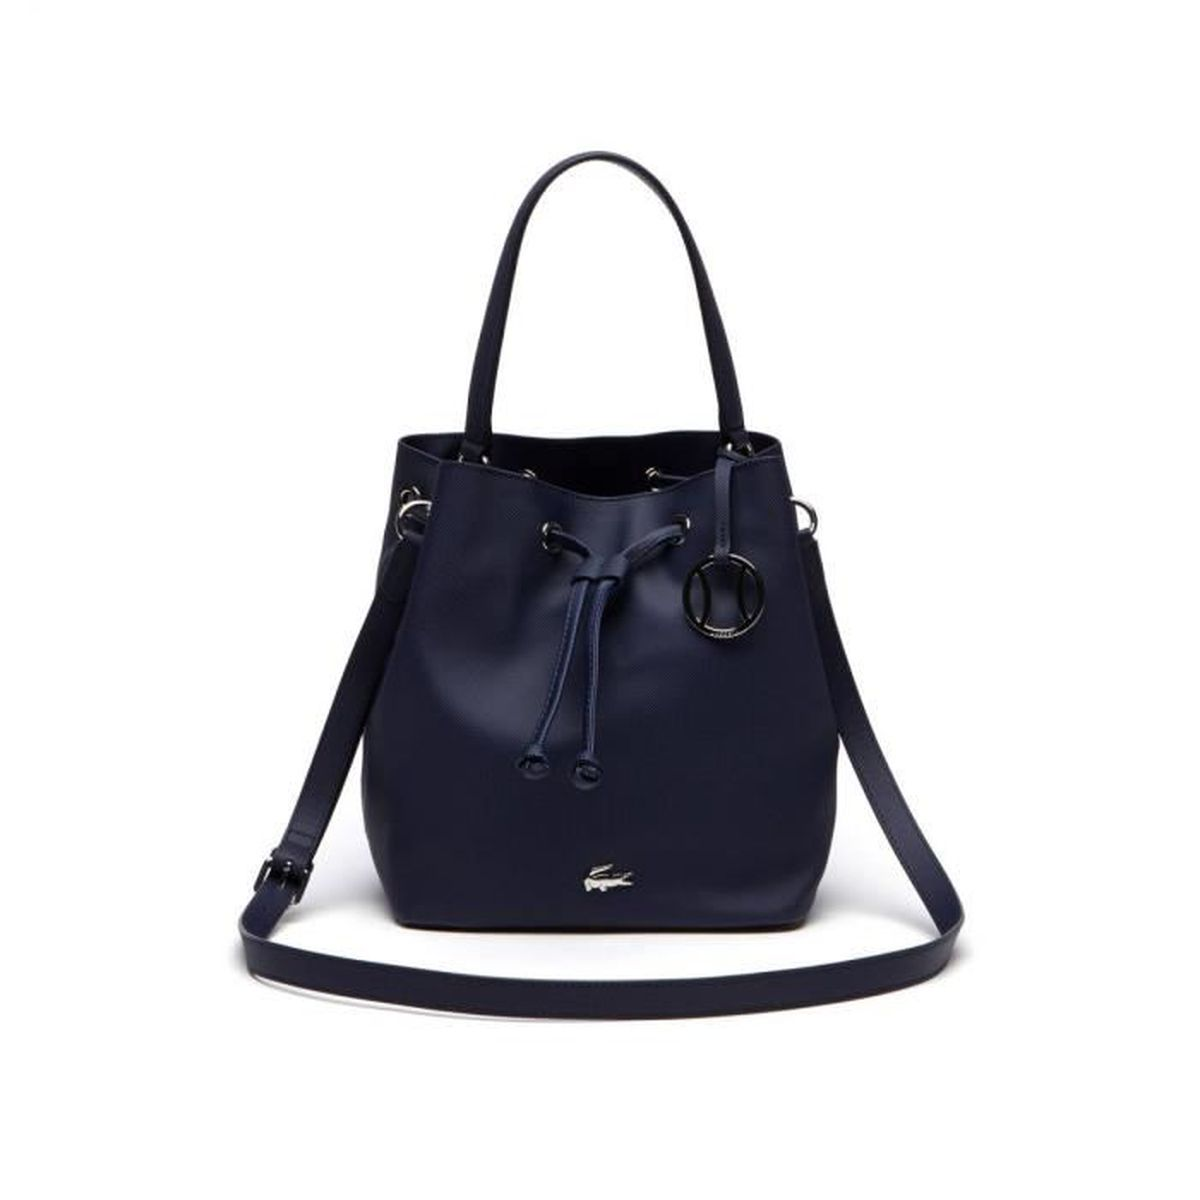 5cb3e963ec60 Lacoste - Sac sceau Daily Classic (NF1876DC) peacoat 021 taille 25.5 ...